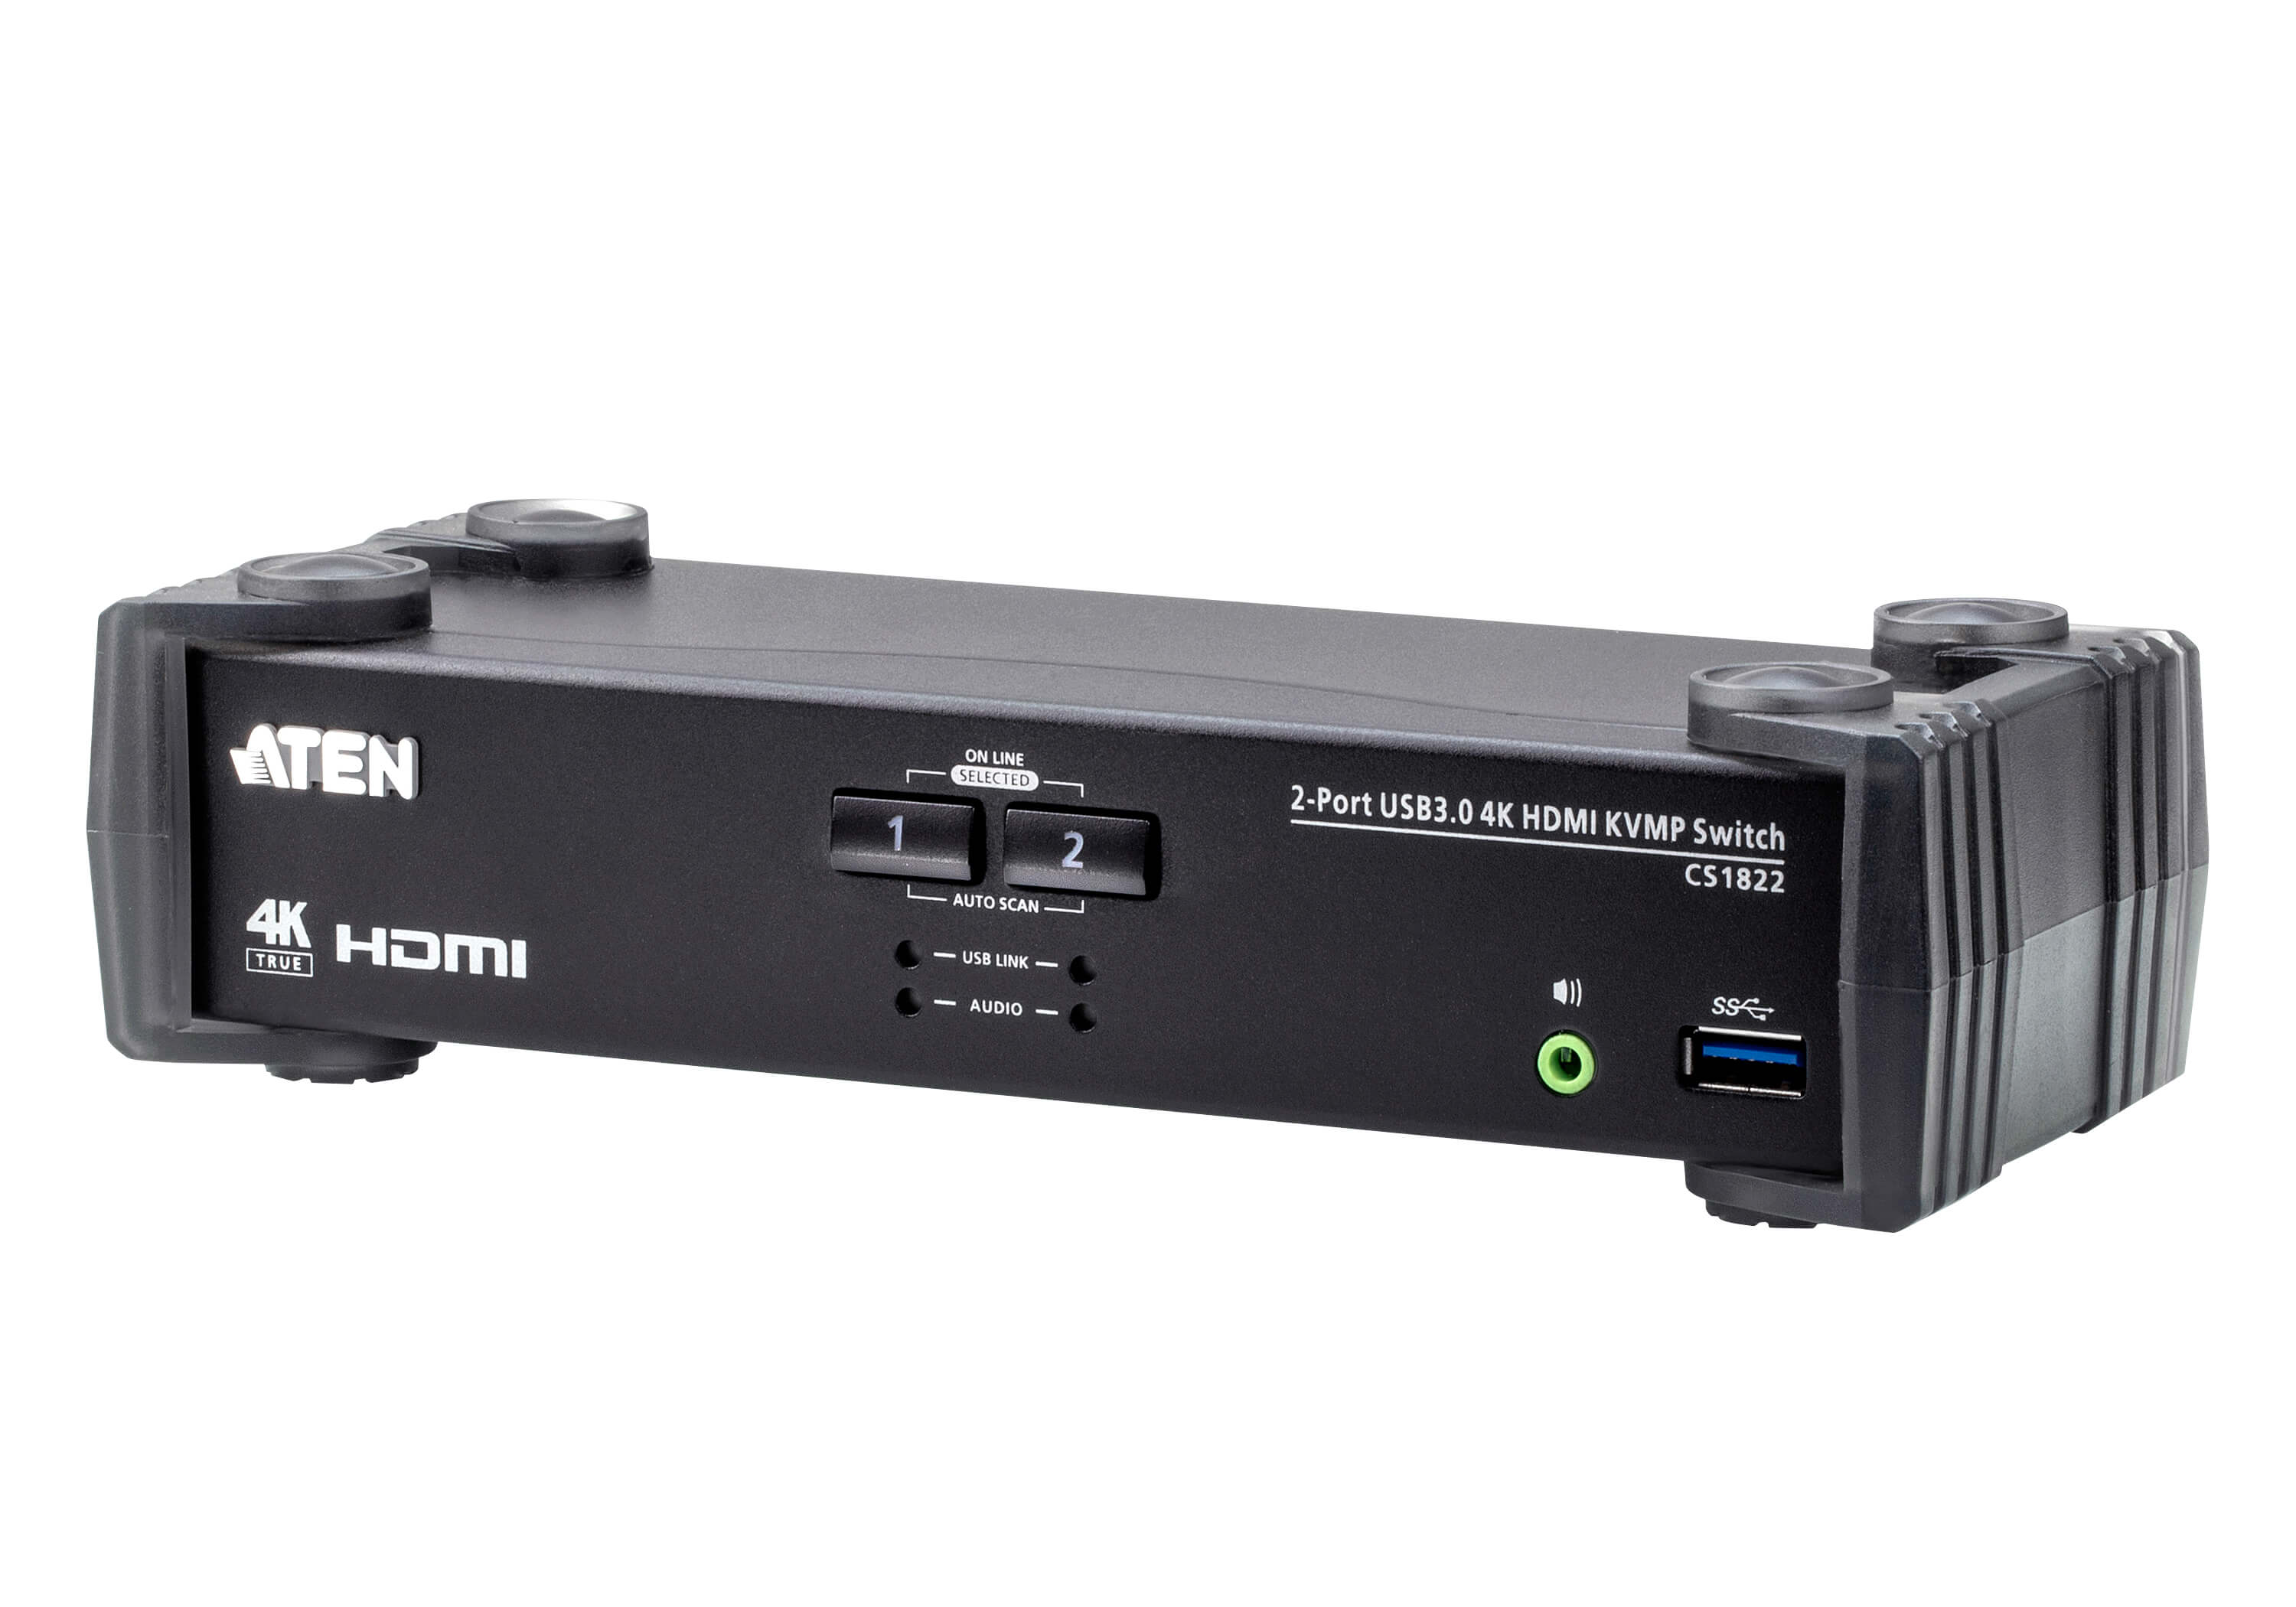 2-Port USB 3.0 4K HDMI KVMP™ Switch with Audio Mixer Mode